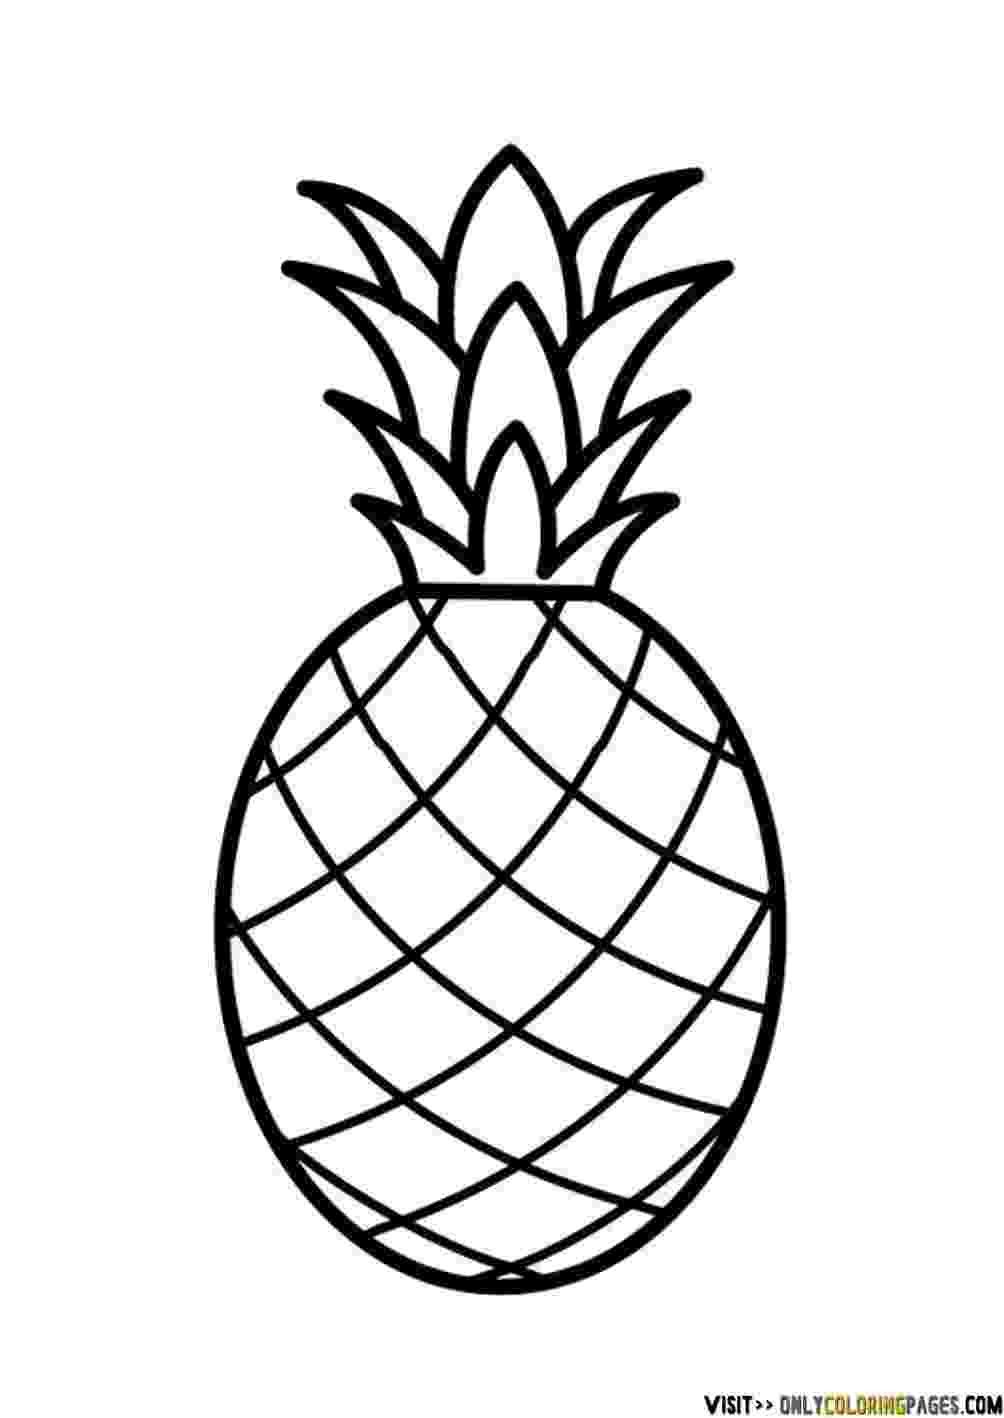 pineapple colouring picture 10 best pineapple coloring pages for toddlers colouring pineapple picture